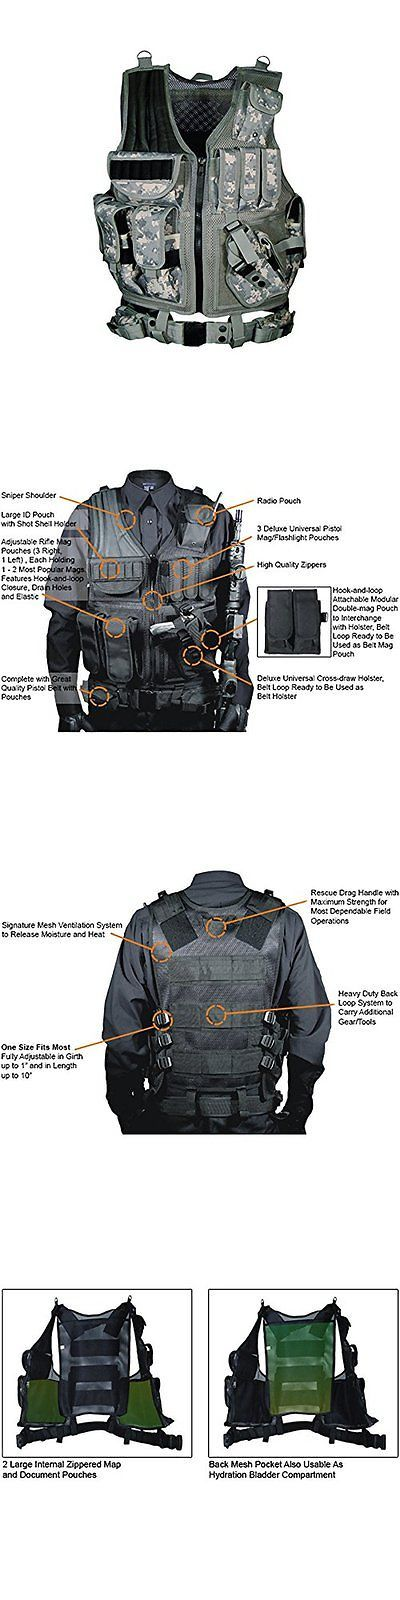 Chest Rigs and Tactical Vests 177891: Utg 547 Law Enforcement Tactical Vest Army Digital Swat Gear Assault Military -> BUY IT NOW ONLY: $82.76 on eBay!